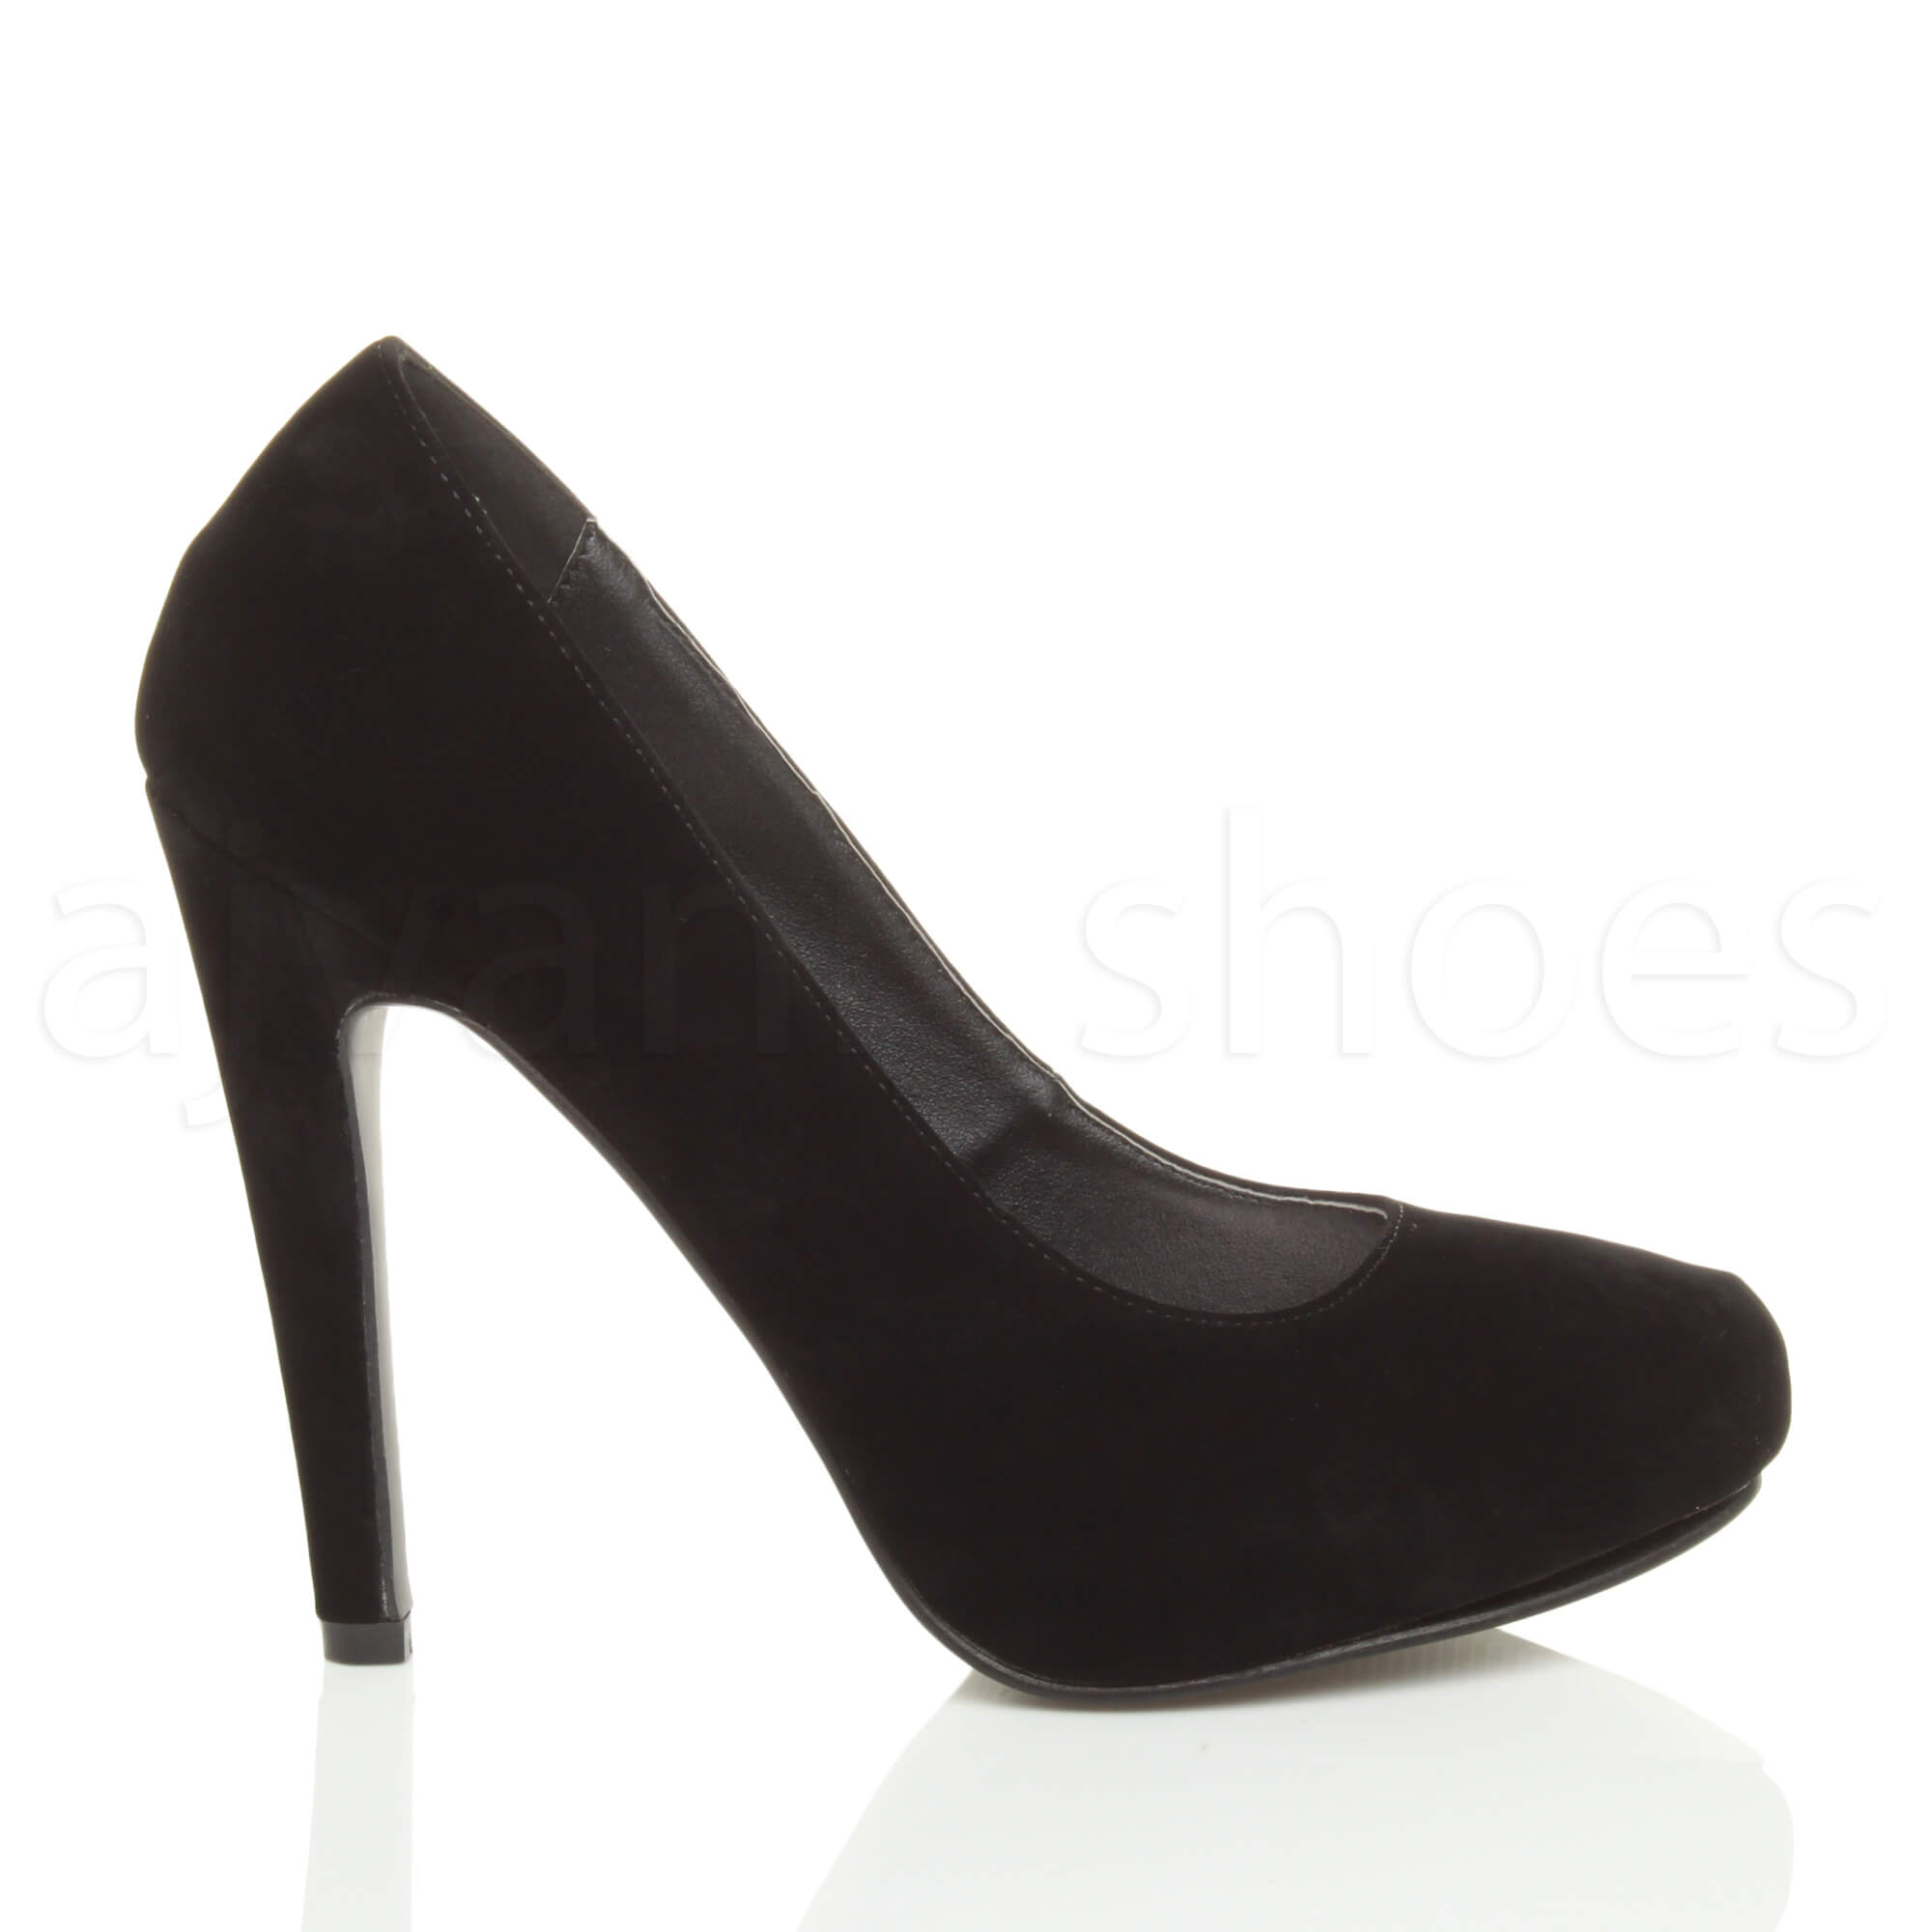 WOMENS-LADIES-HIGH-HEEL-CONCEALED-PLATFORM-COURT-SHOES-PARTY-PROM-PUMPS-SIZE thumbnail 8